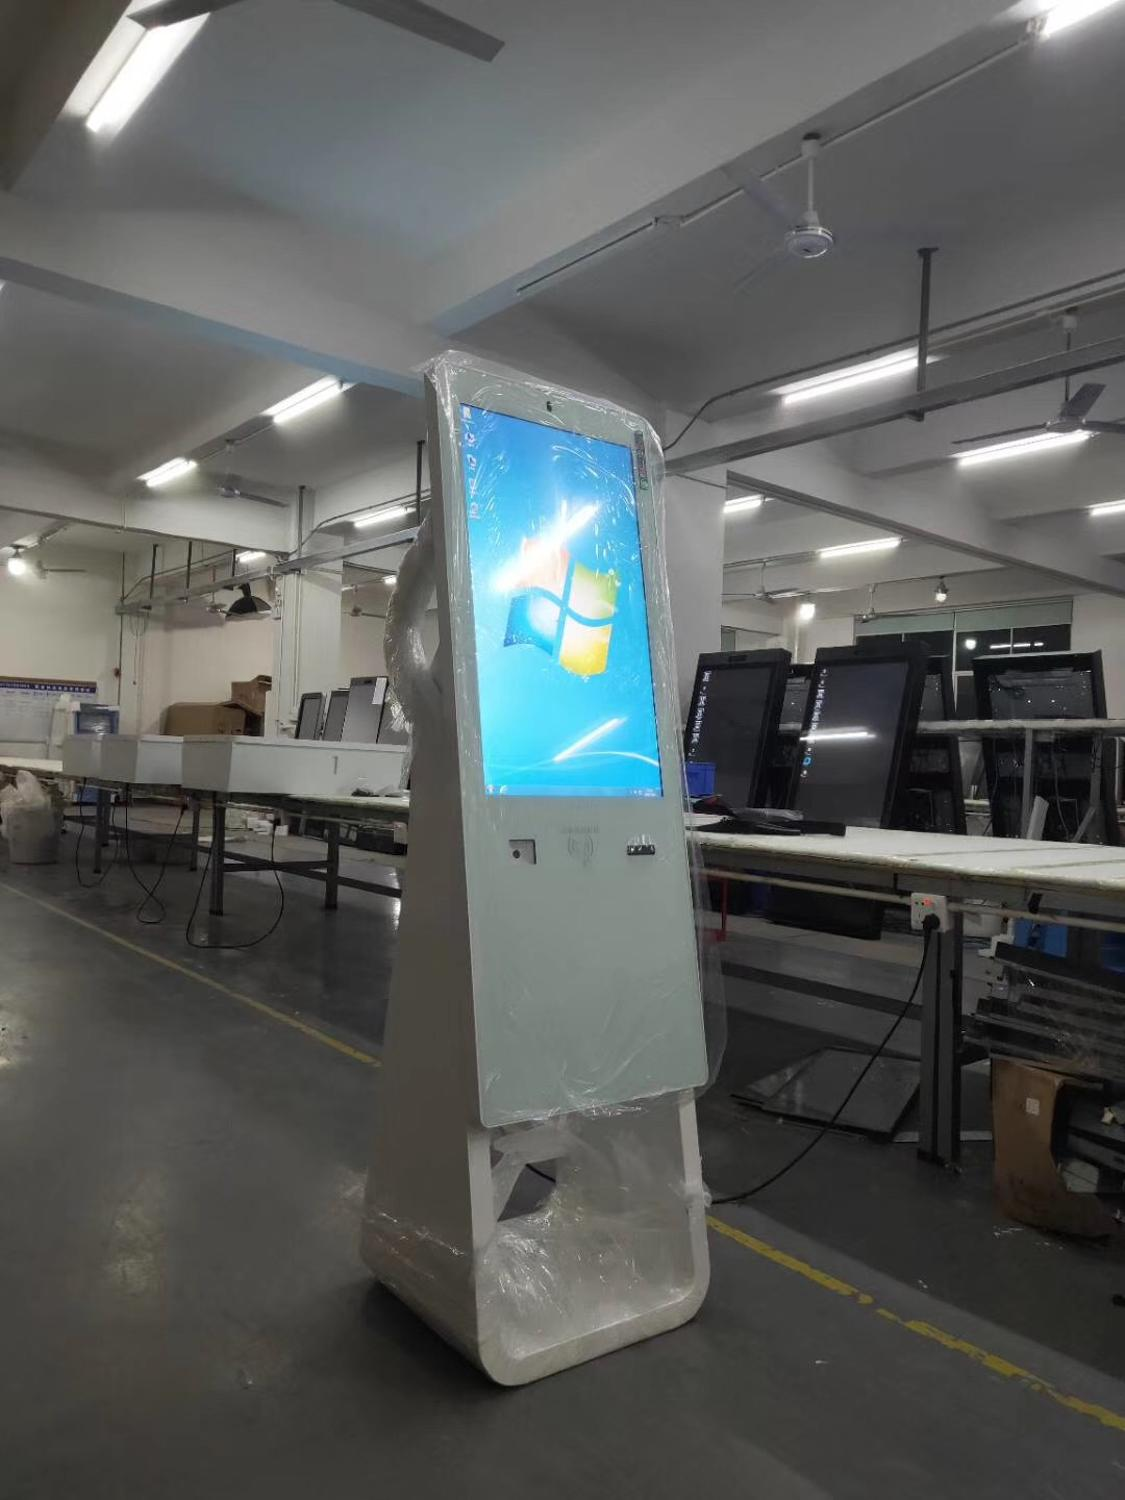 Lan Wifi Digital Signage Fingerprint Facial Recognition AIO With Camera  And PC Buit In 4G Module Lcd Touch Screen Display